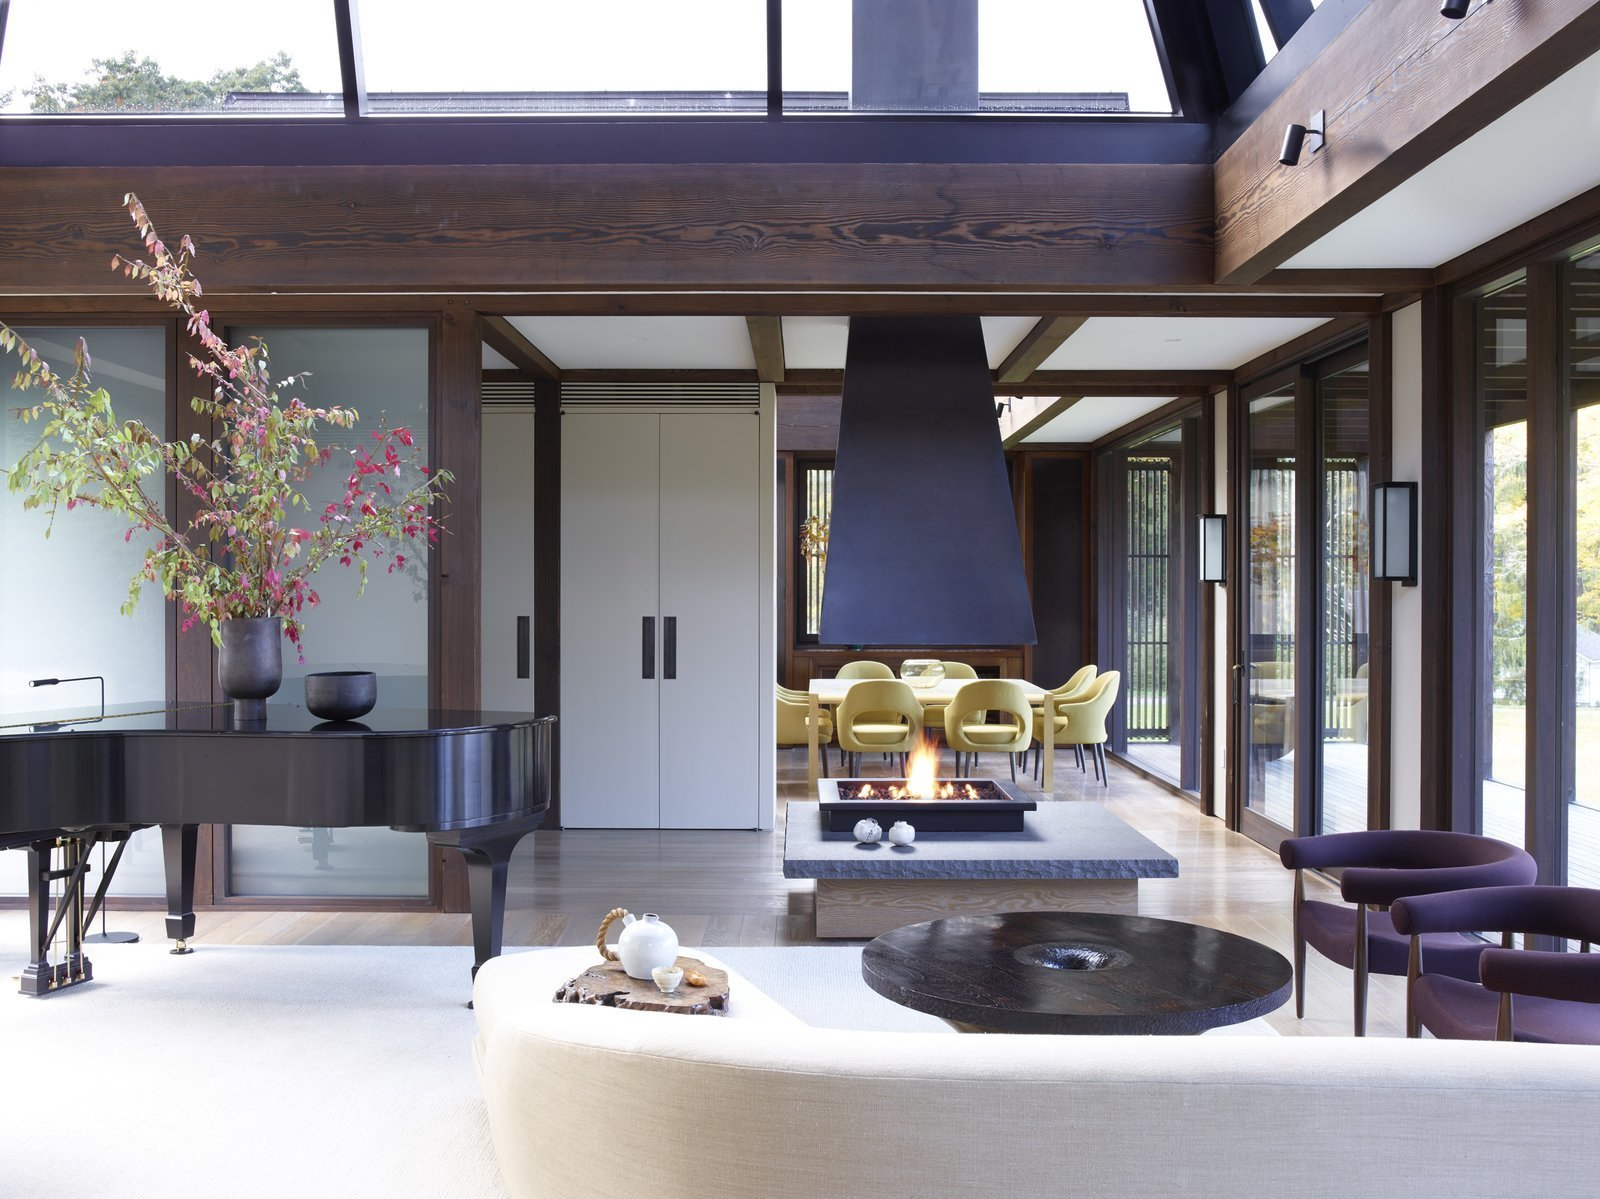 Living, Light Hardwood, Coffee Tables, Chair, Standard Layout, Wall, Rug, Storage, Gas Burning, and Two-Sided Fashion designer Josie and her husband Ken Natori are big fans of traditional Japanese architecture, so when Brooklyn-based practice Tsao & McKown Architects designed their home in Pound Ridge, New York, they used a heavy, exposed-timber structure, and included Japanese-style gardens and landscaping.  Living Two-Sided Standard Layout Photos from 10 Zen Homes That Champion Japanese Design